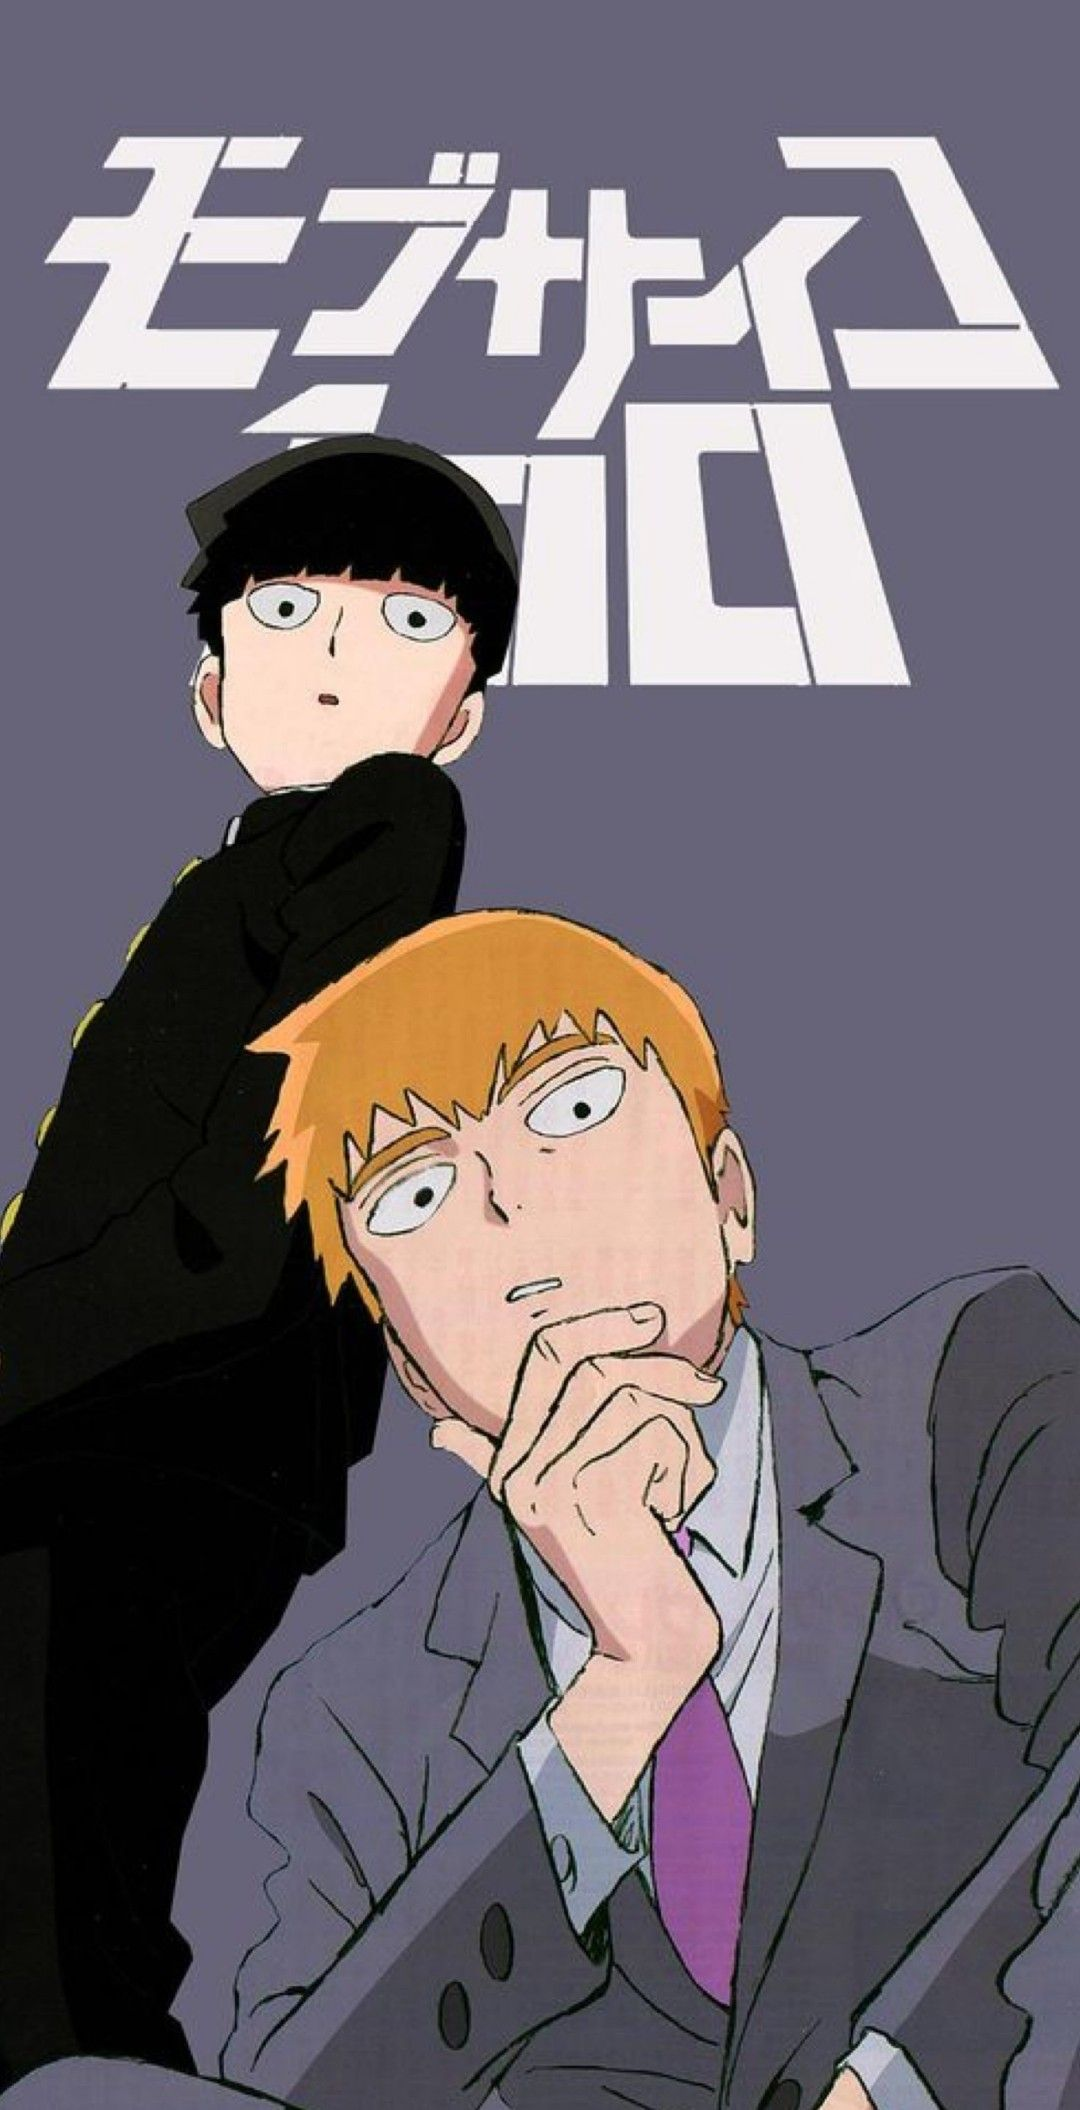 Pin By Mob On Iphone Wallpaper Mob Psycho 100 Anime Mob Psycho 100 Mob Psycho 100 Wallpaper